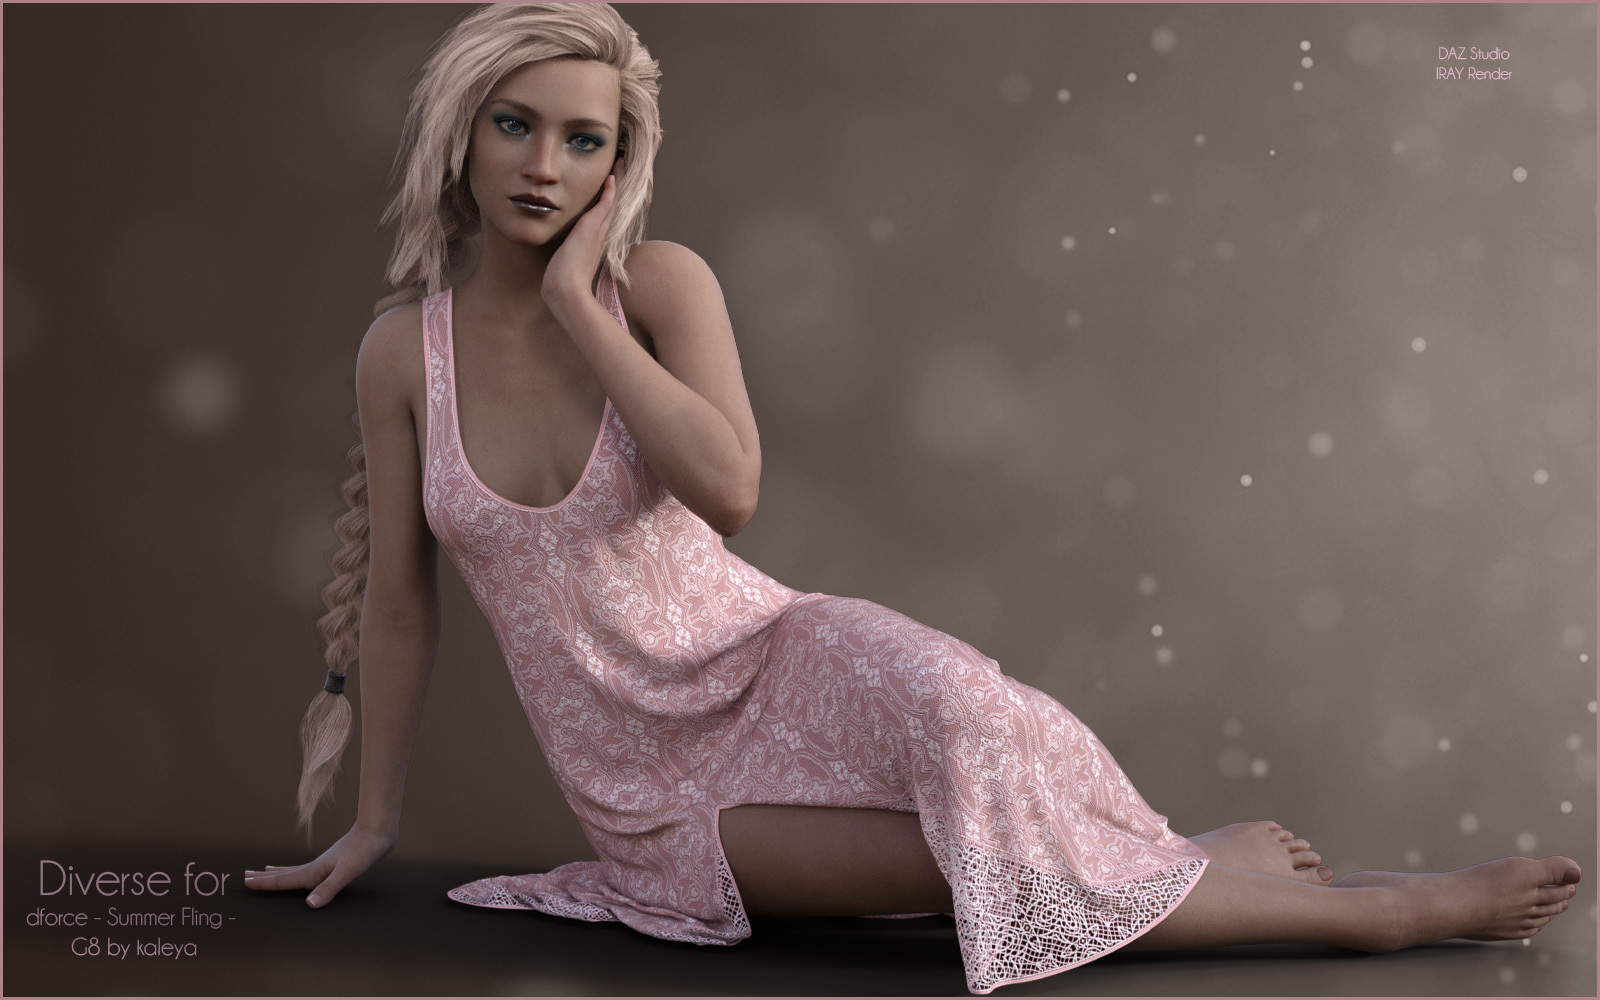 Diverse for SummerFling by antje